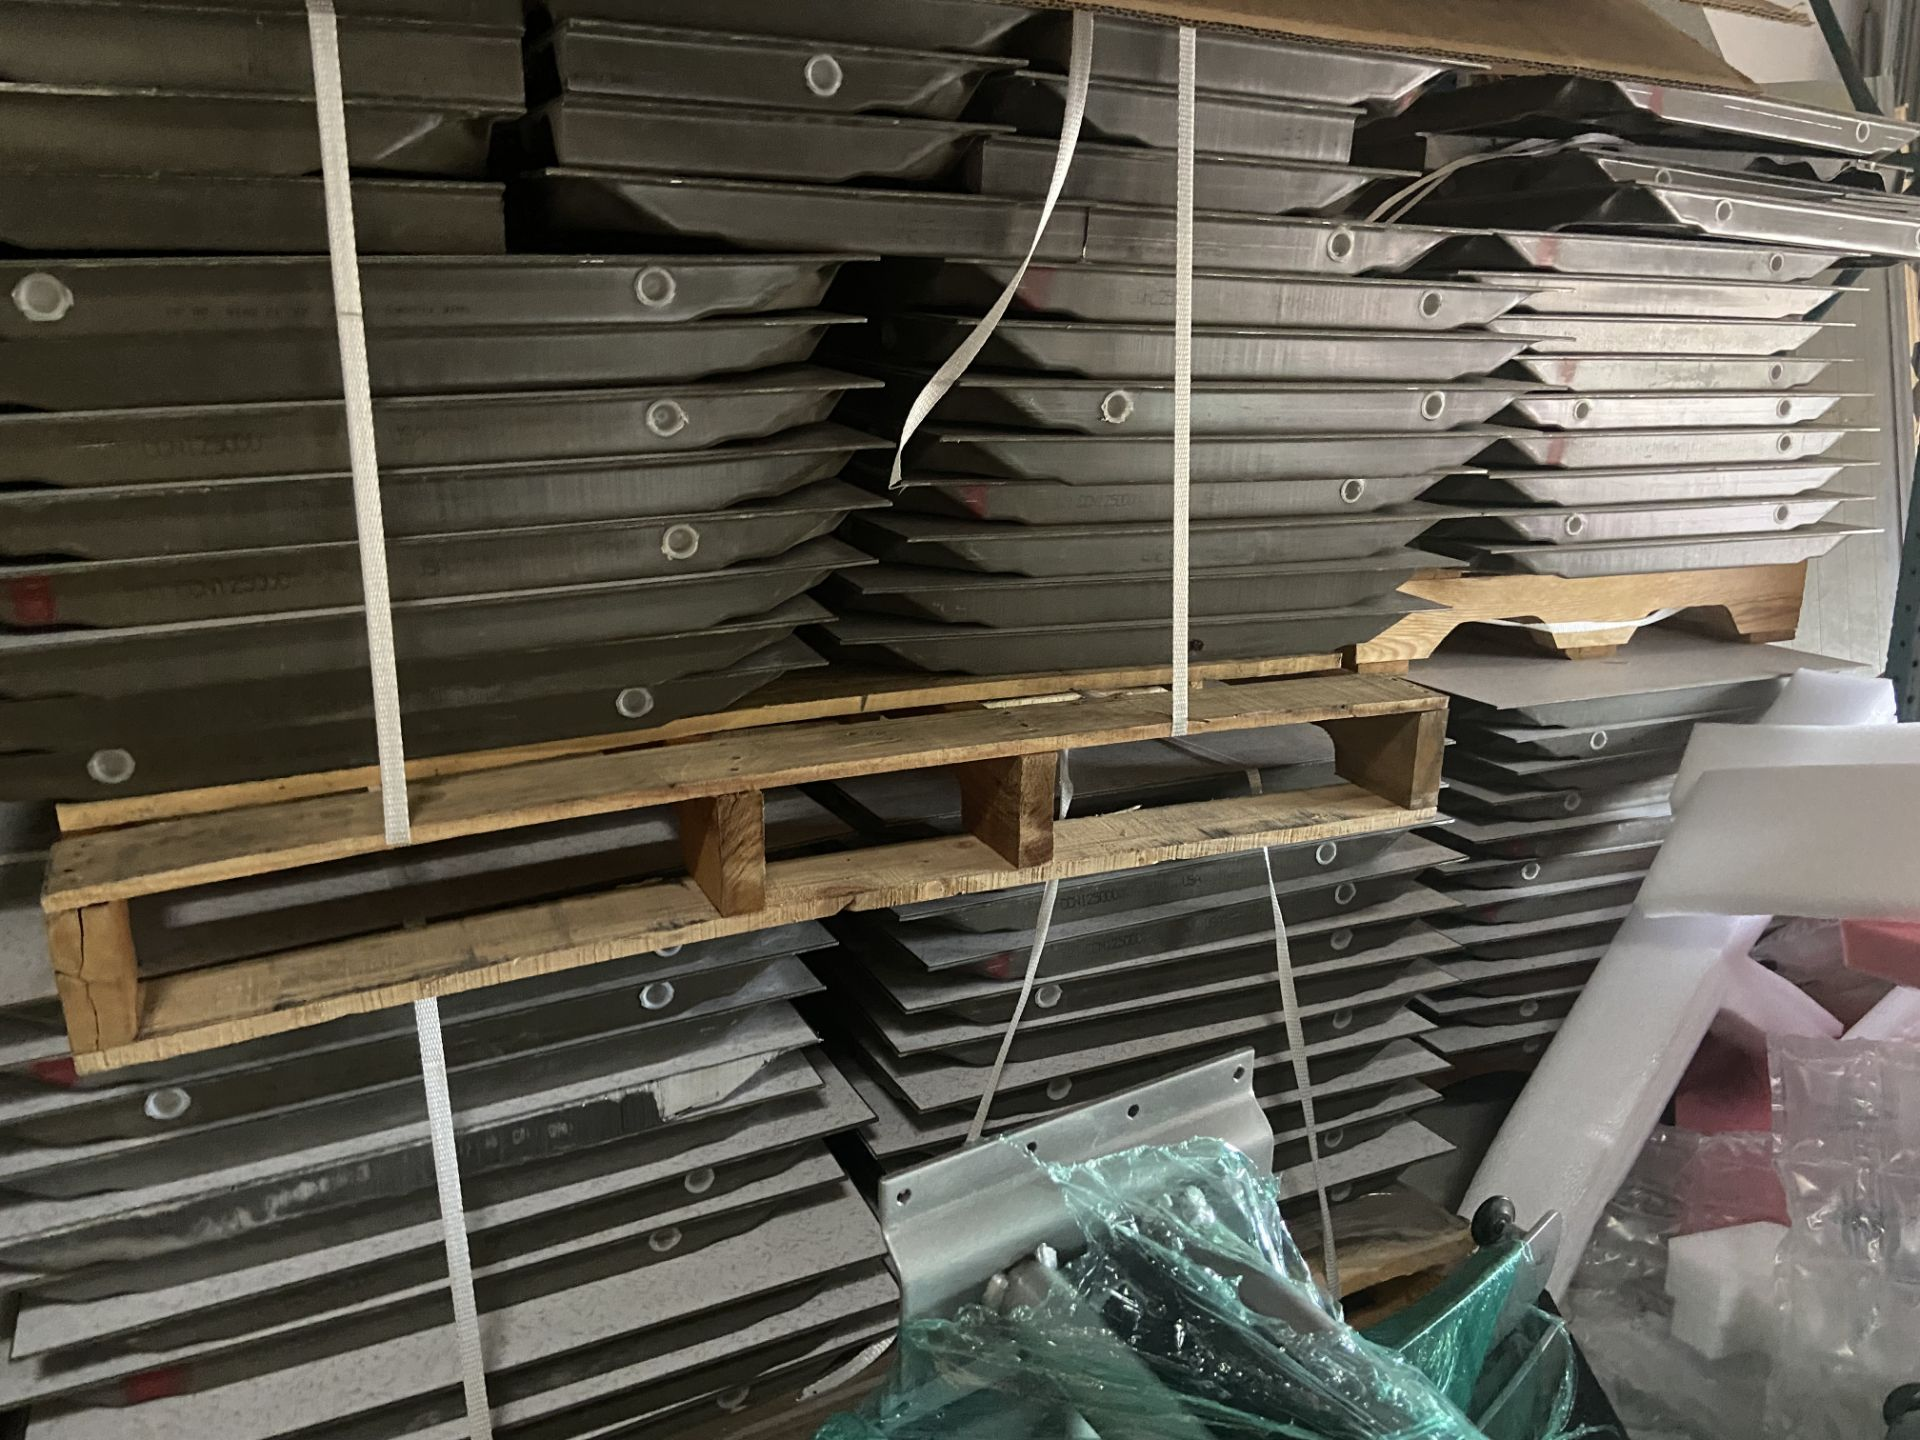 Raised Floor System Loading/Removal Fee: $120 - Image 3 of 4